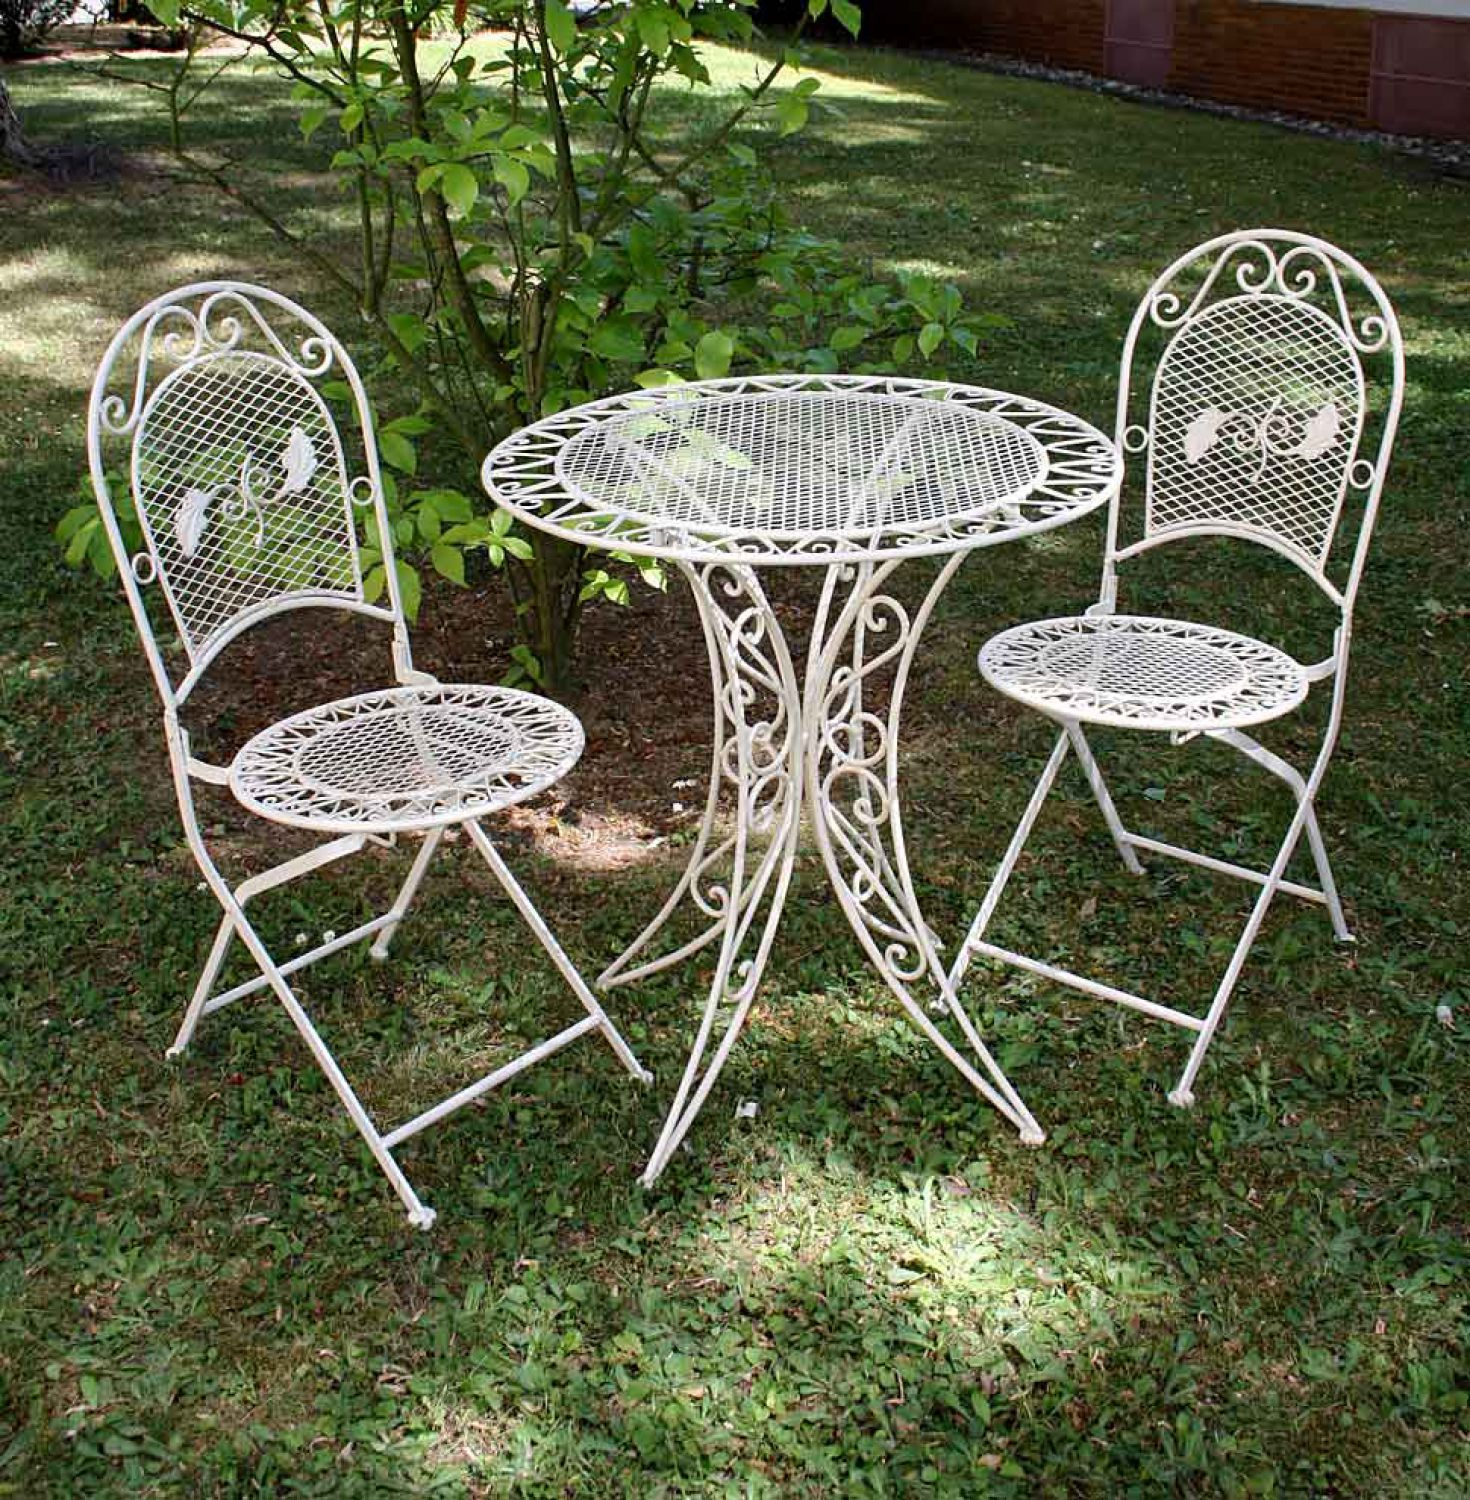 Vintage Wrought Iron Table And Chairs Gartenmobel Sets